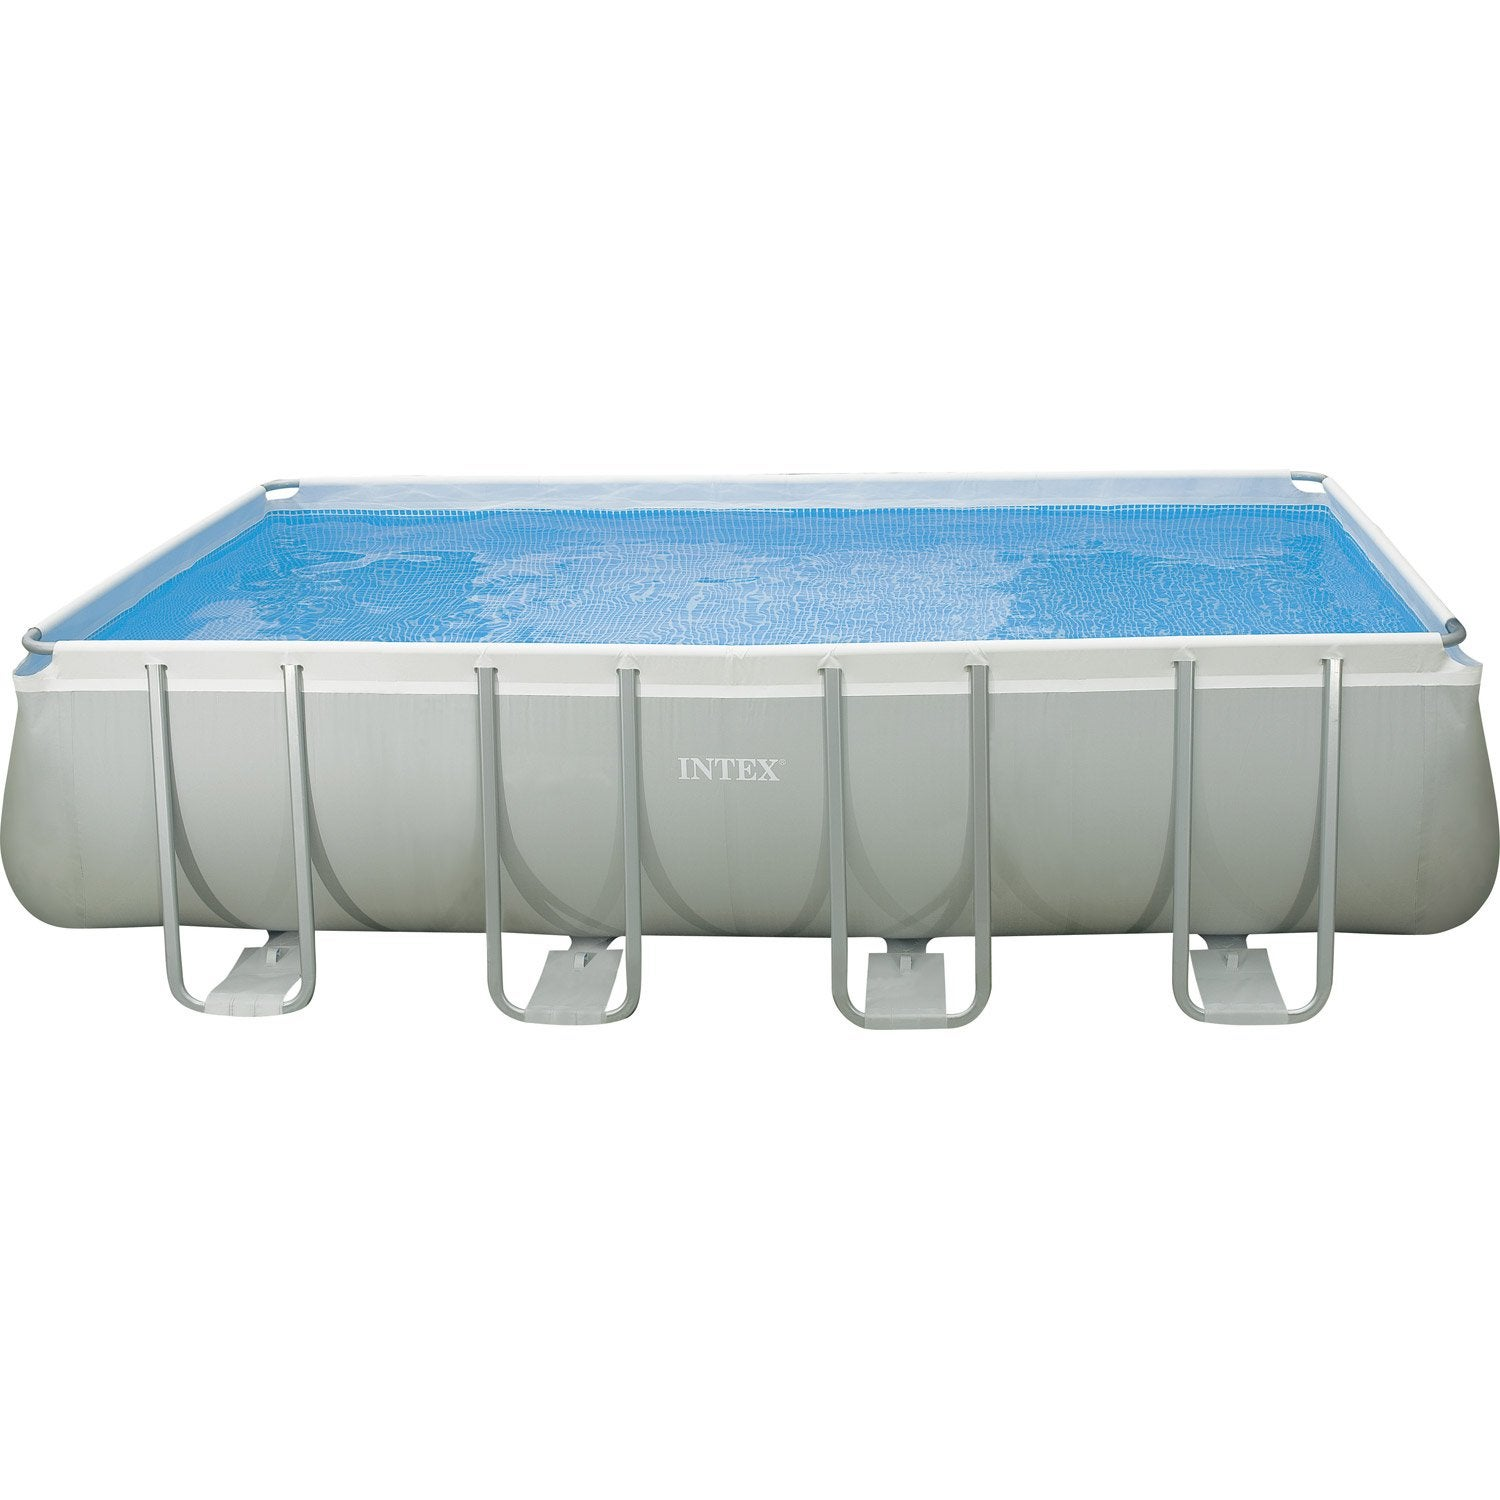 Piscine hors sol autoportante tubulaire intex l x l for Prix piscine intex